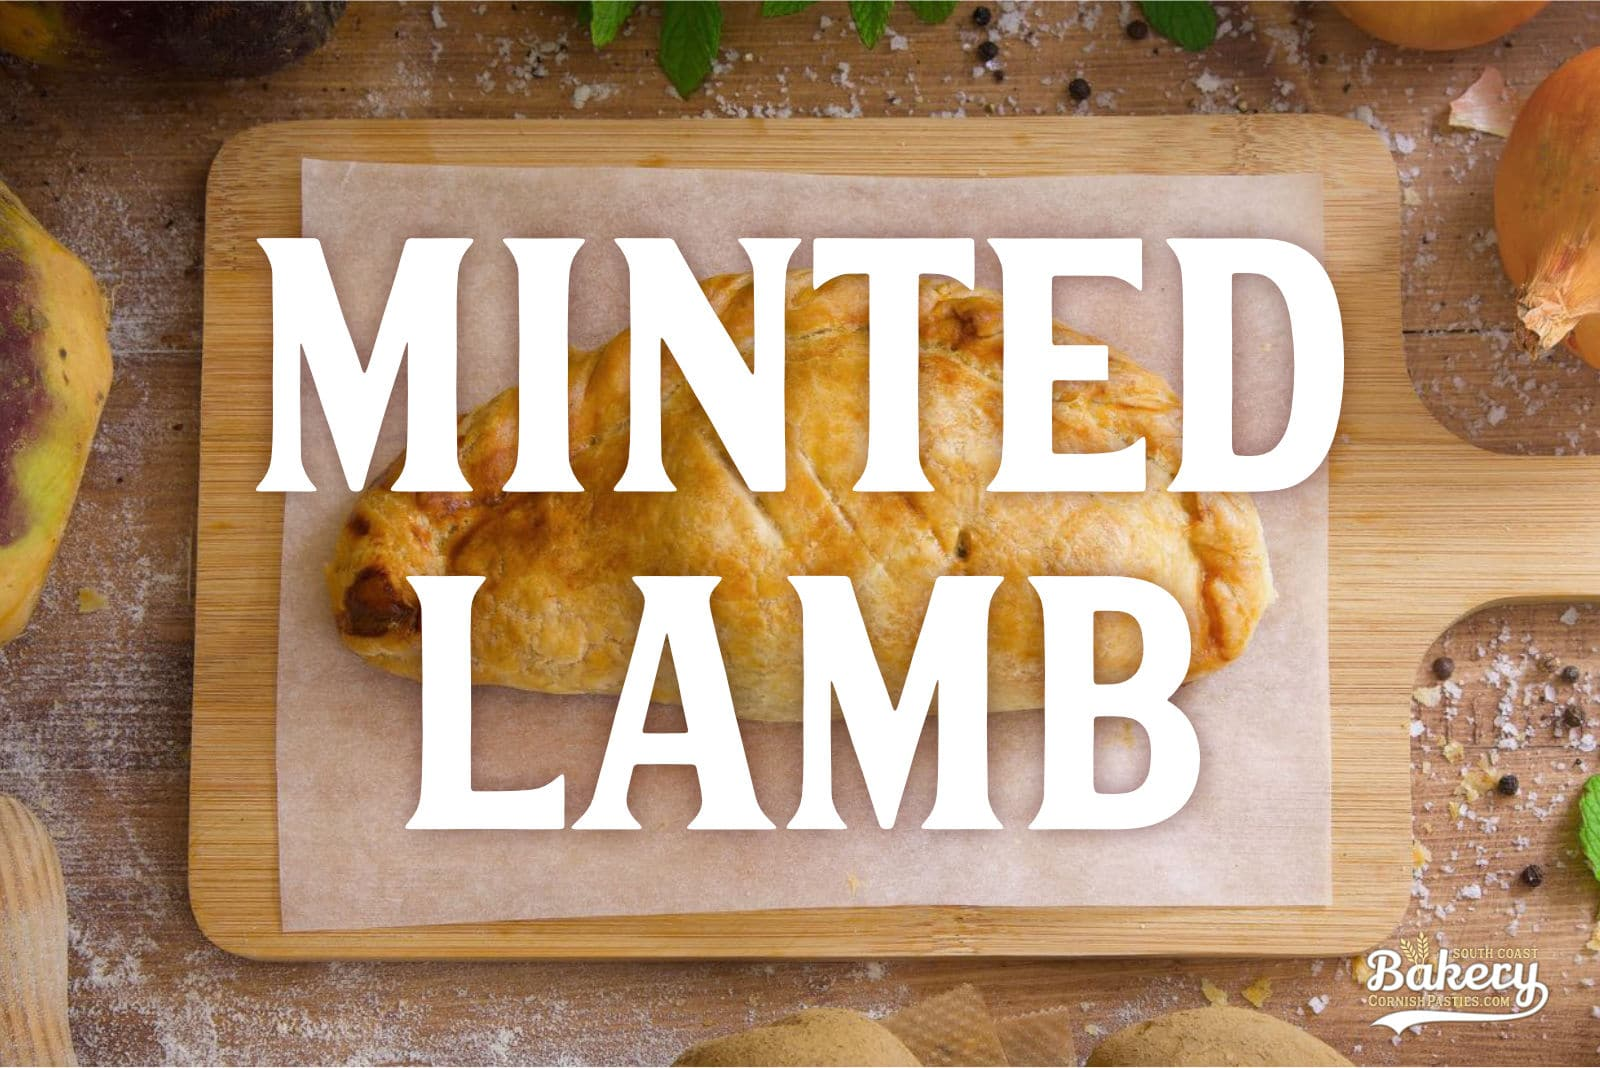 Minted Lamb Pasty